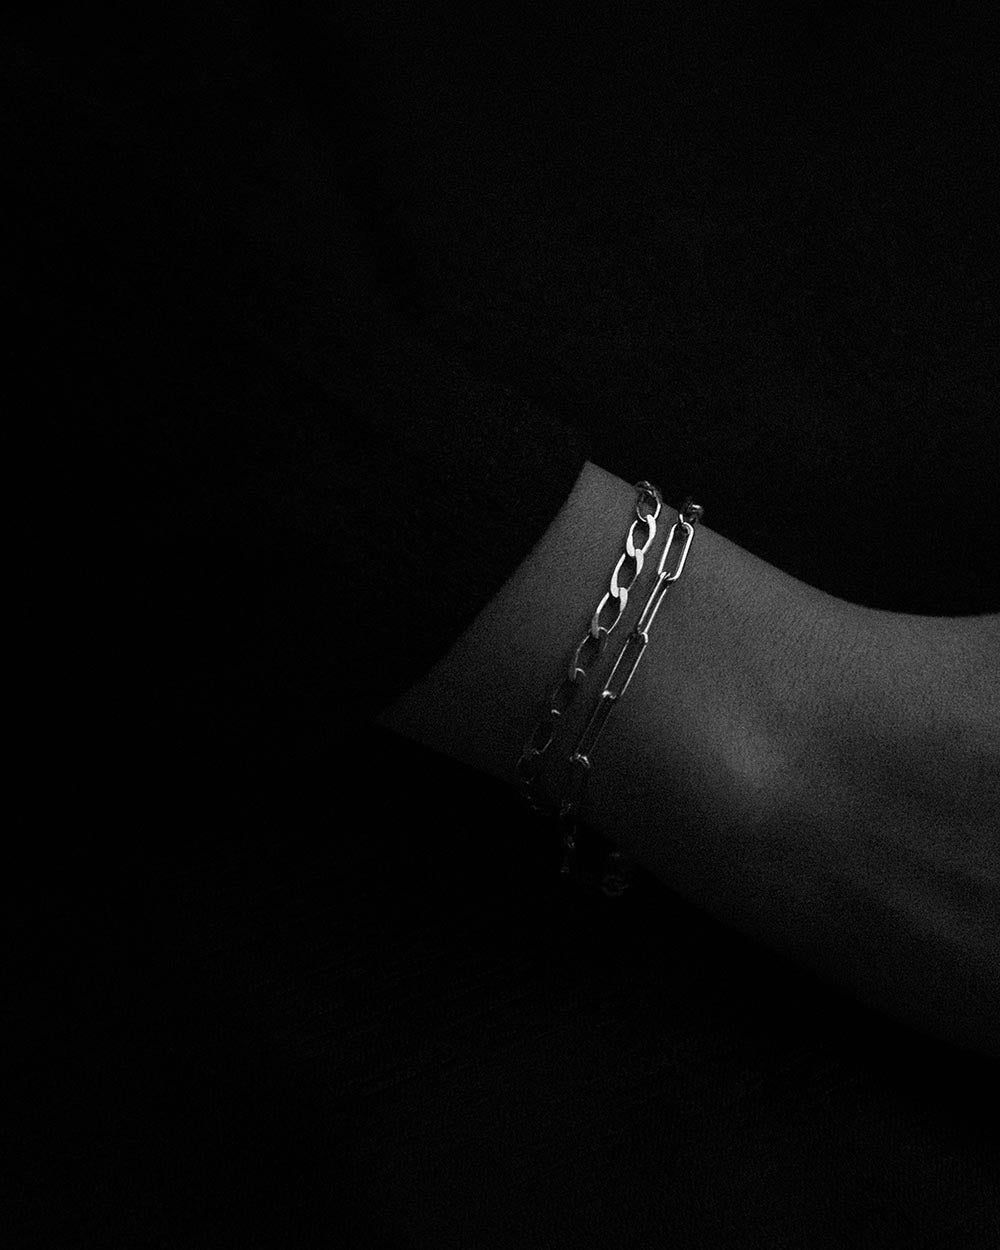 sterling silver chain bracelets for layering made in canada toronto